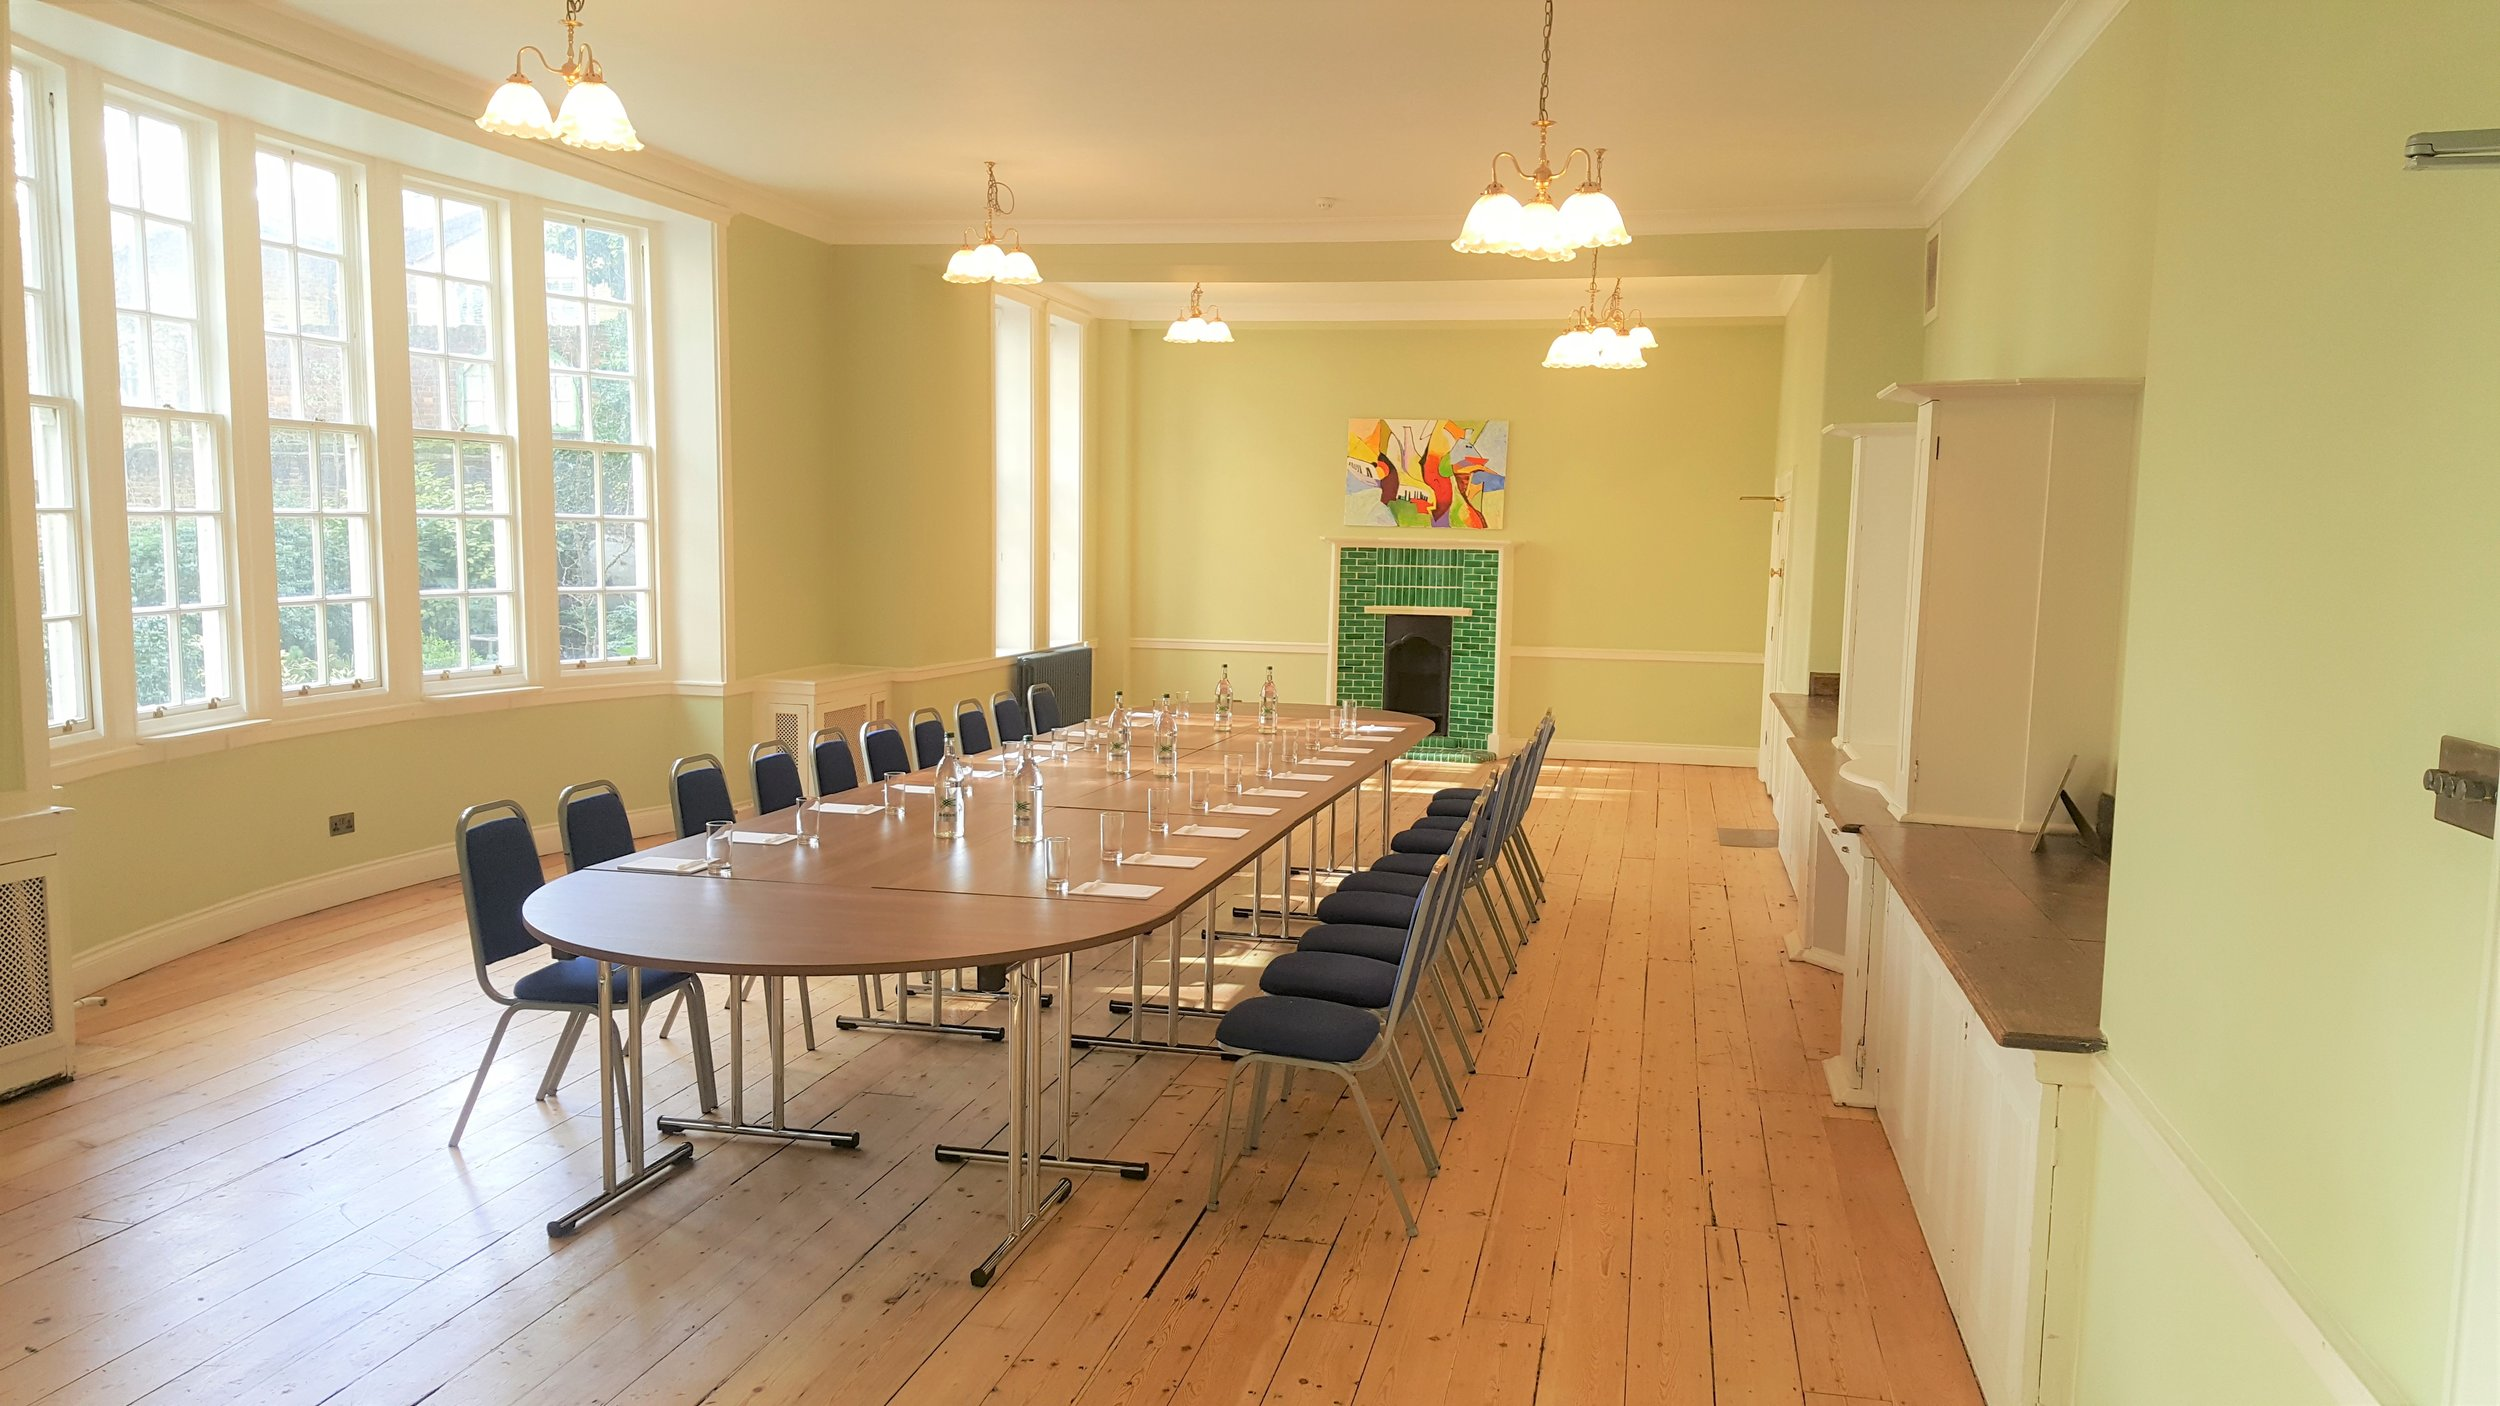 Lethaby Cabaret Conference Room